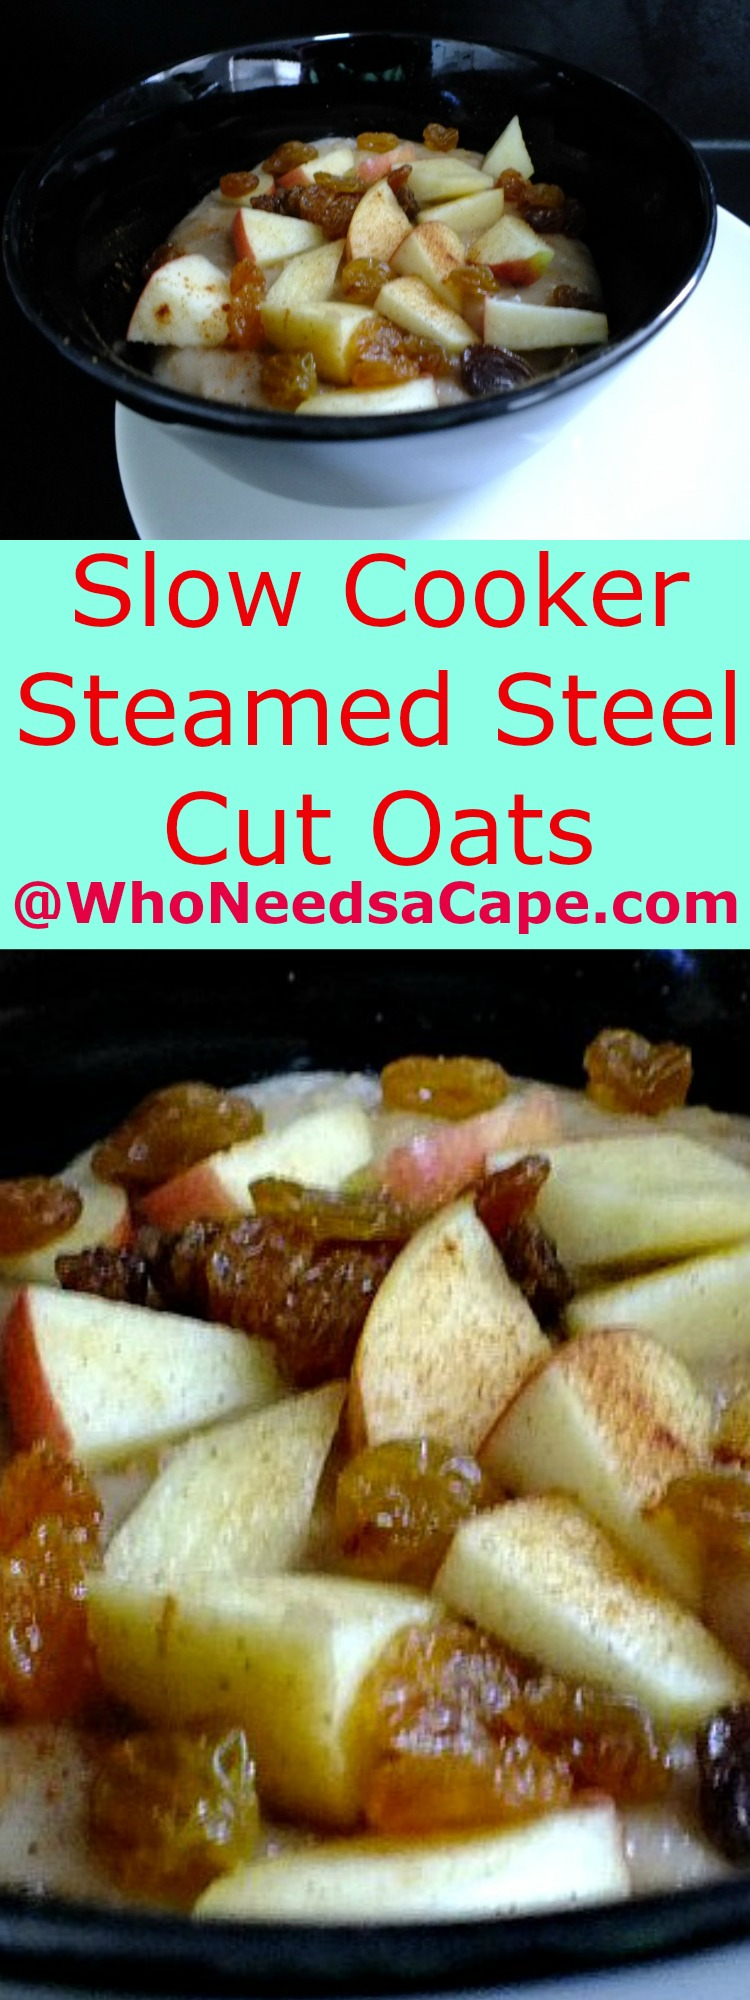 Slow Cooker Steamed Steel Cut Oats are a delish way to start your day ...